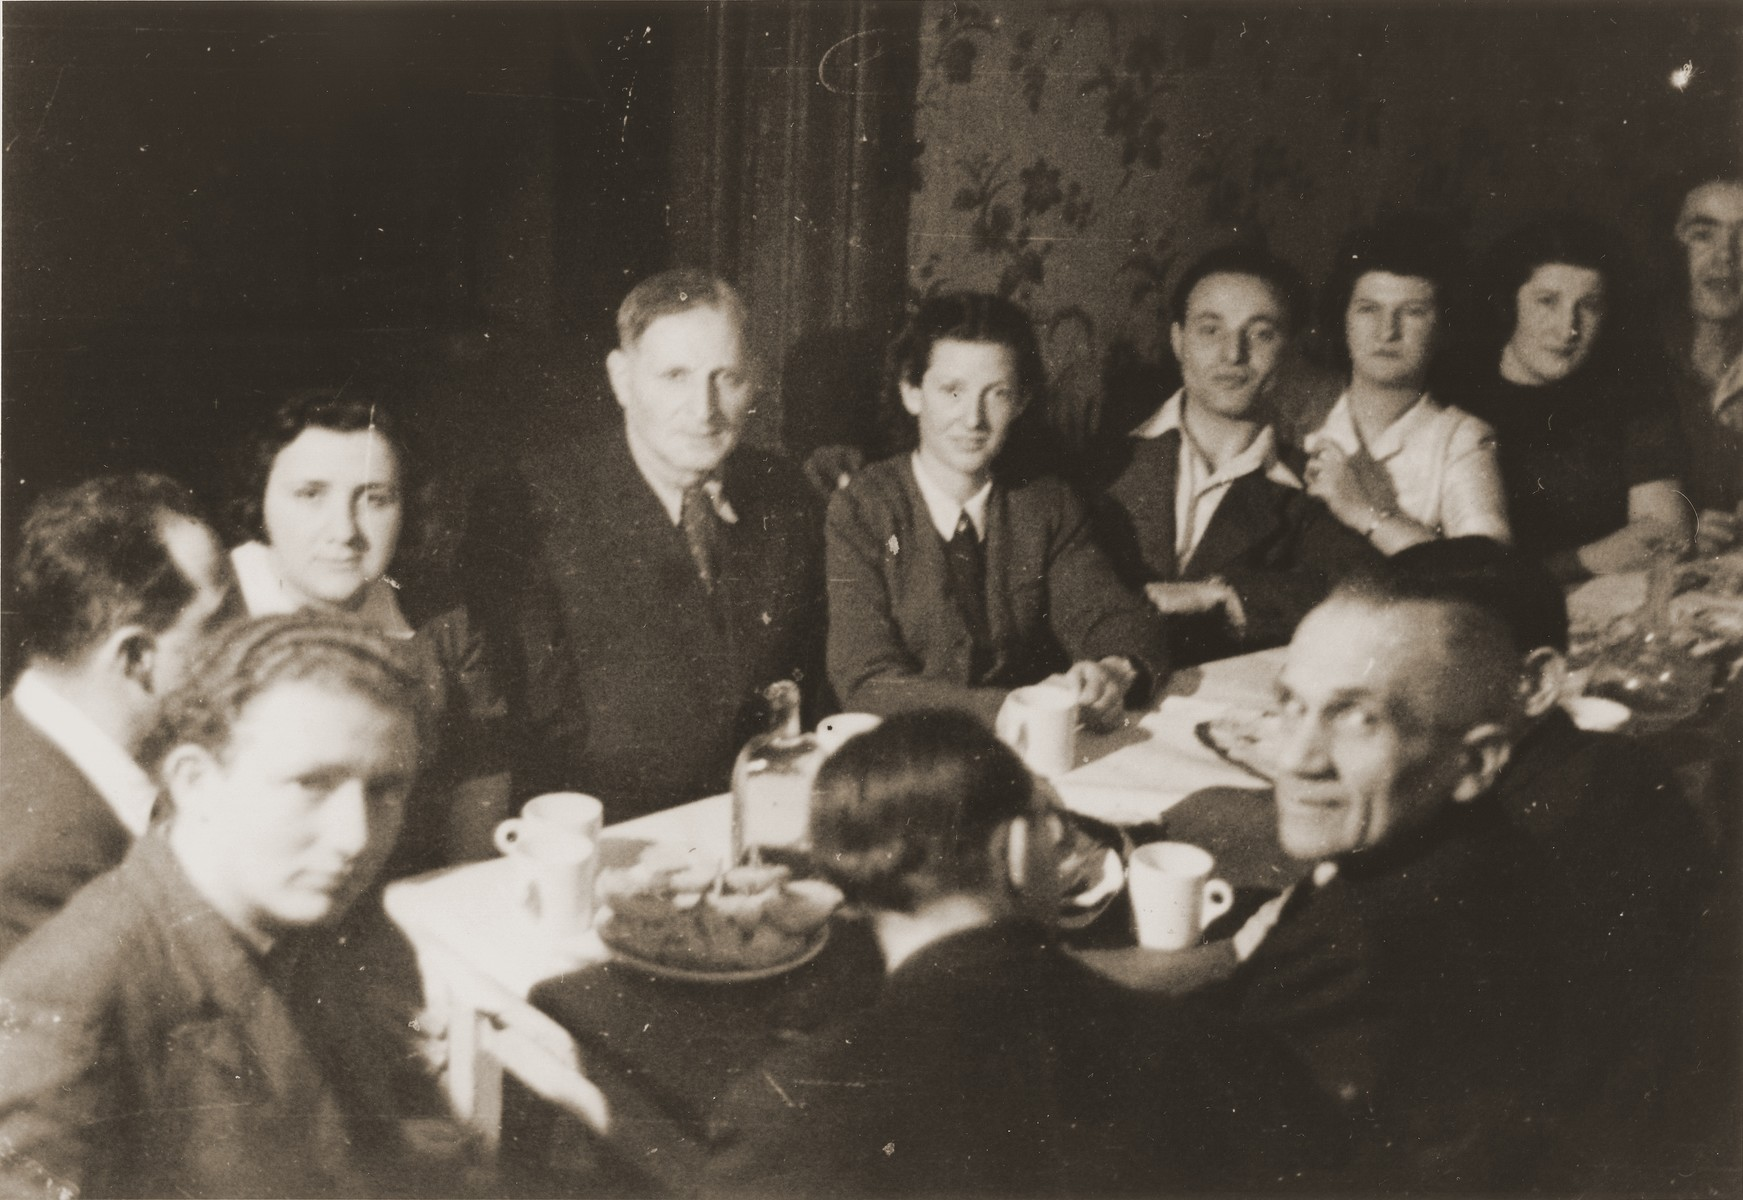 A party at Bricha headquarters in Vienna on Frankgasse 2.  Those pictured include Shmulik Matzner who later fell in Israel's War of Independence, Hermine, Abel Birman and Margot Feuer.